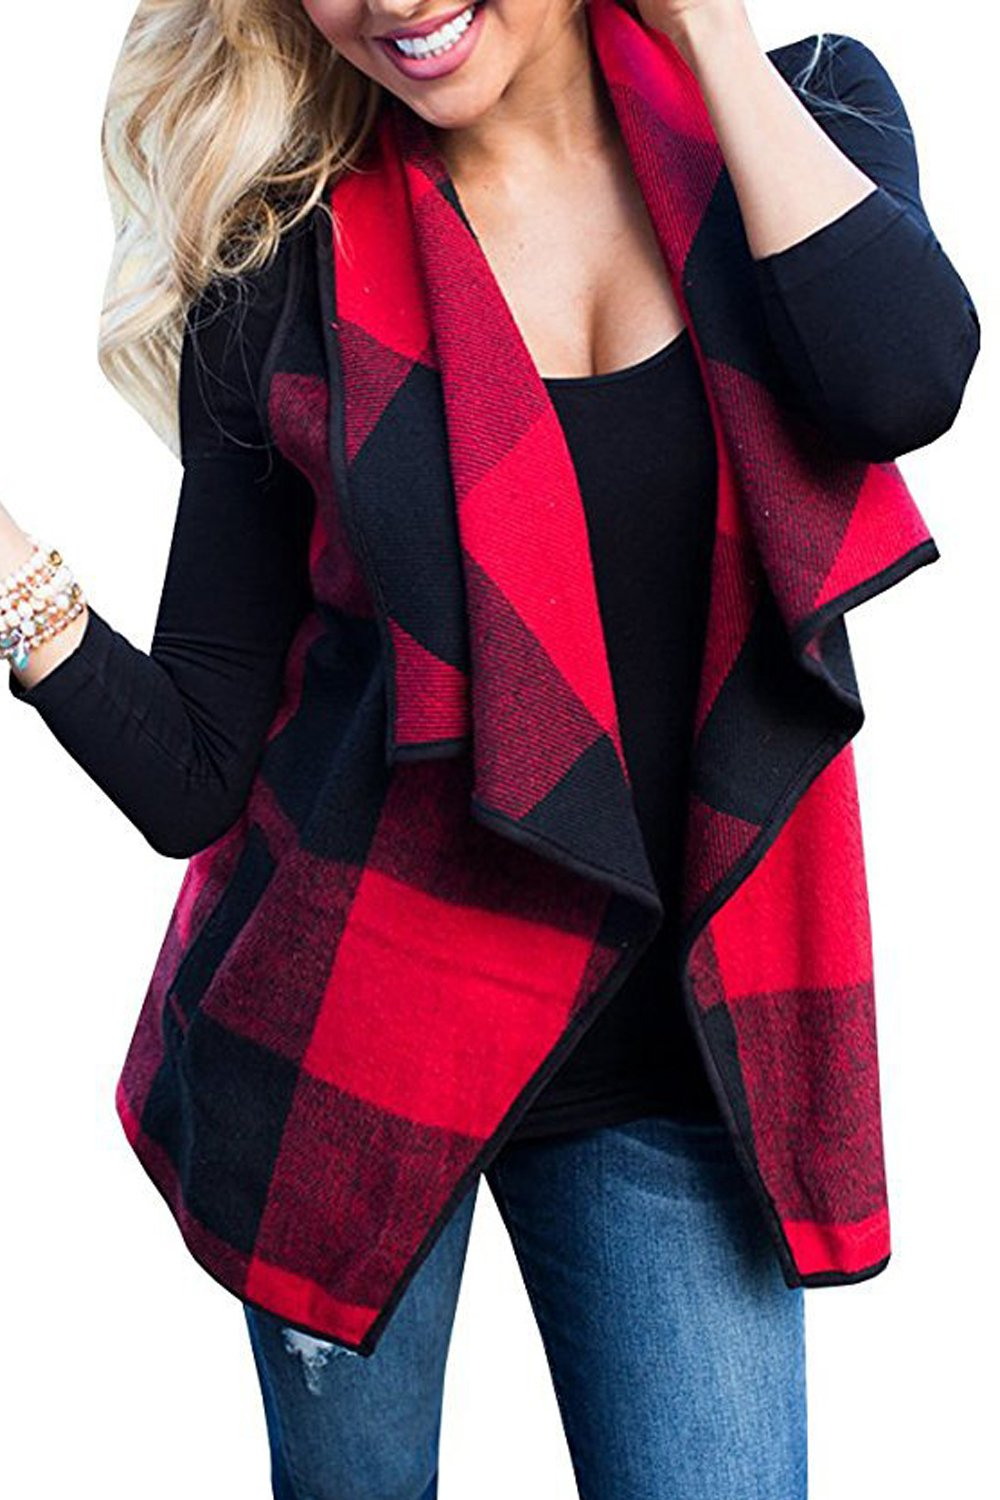 Women Casual Autumn Sleeveless Open Front Lapel Plaid Cardigans Vest CAMEG931